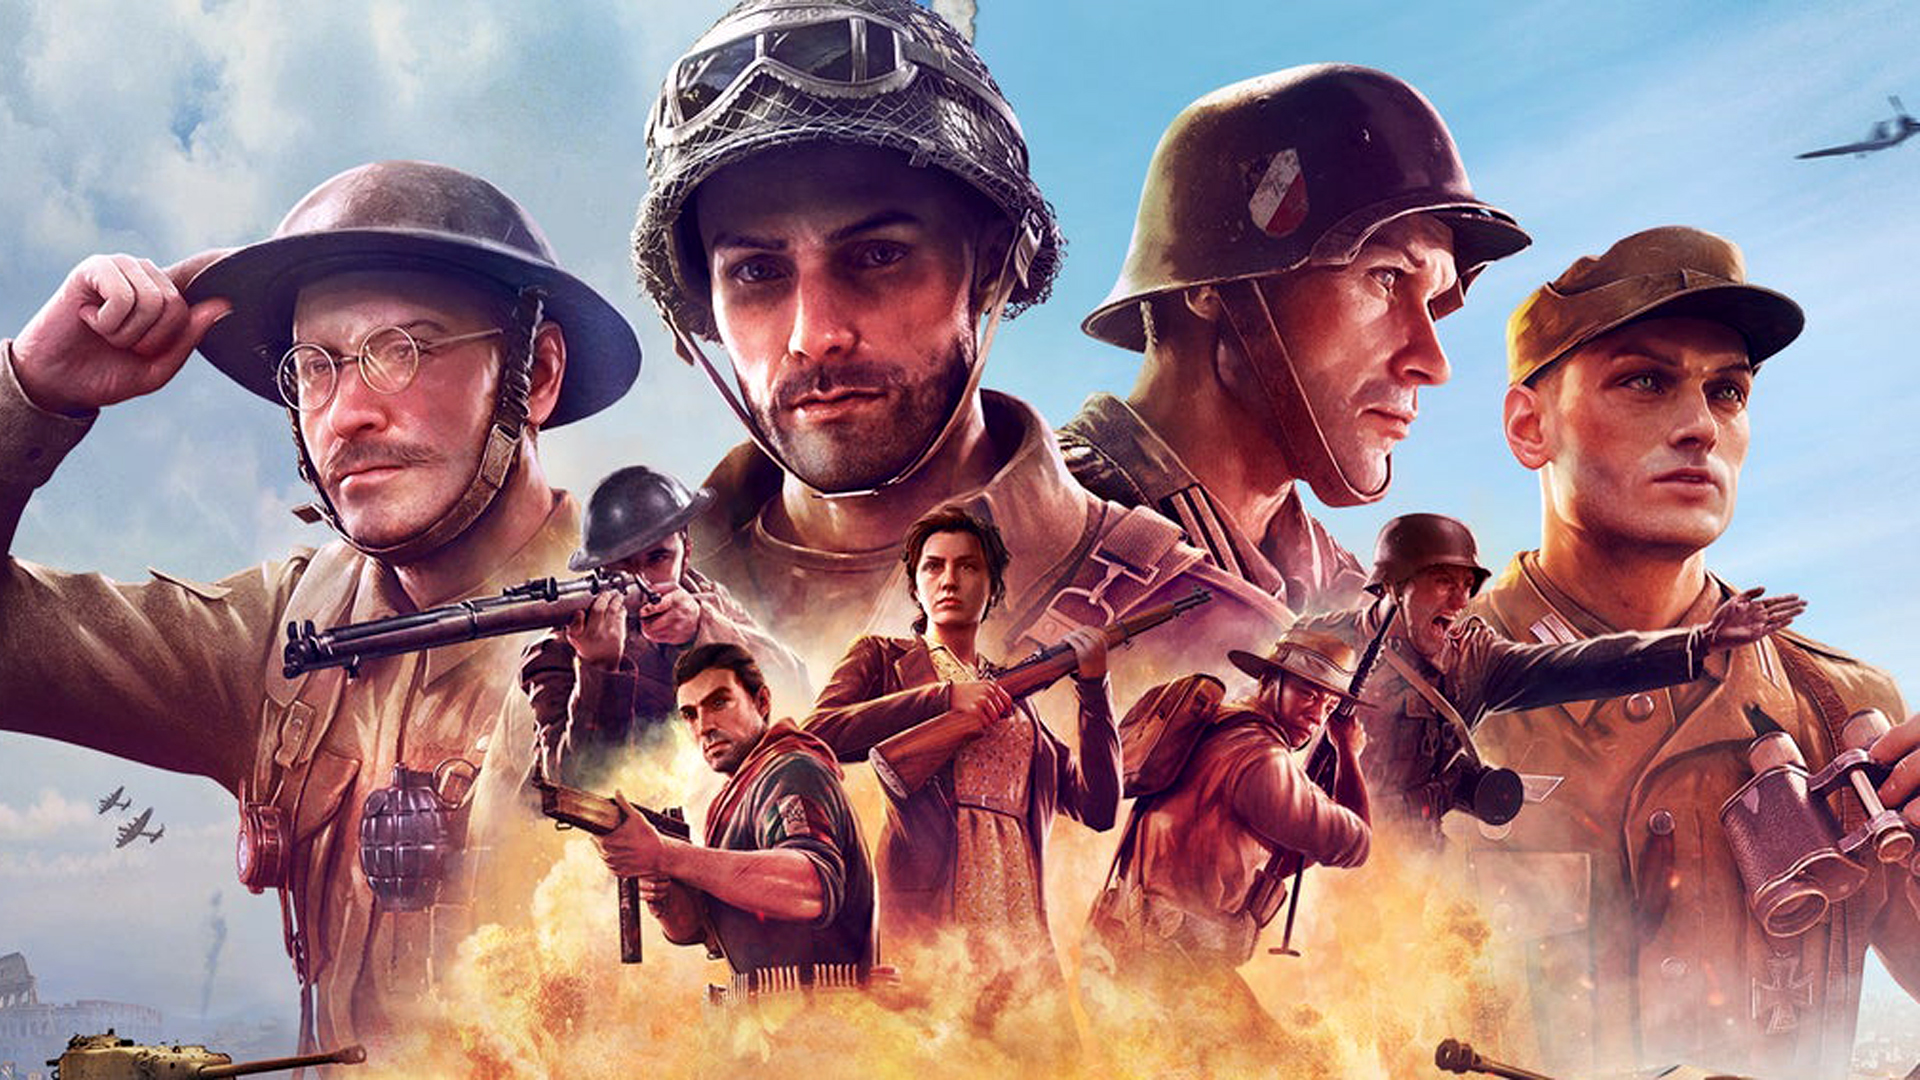 Company of Heroes 3's story will change based on your actions, The Witcher-style